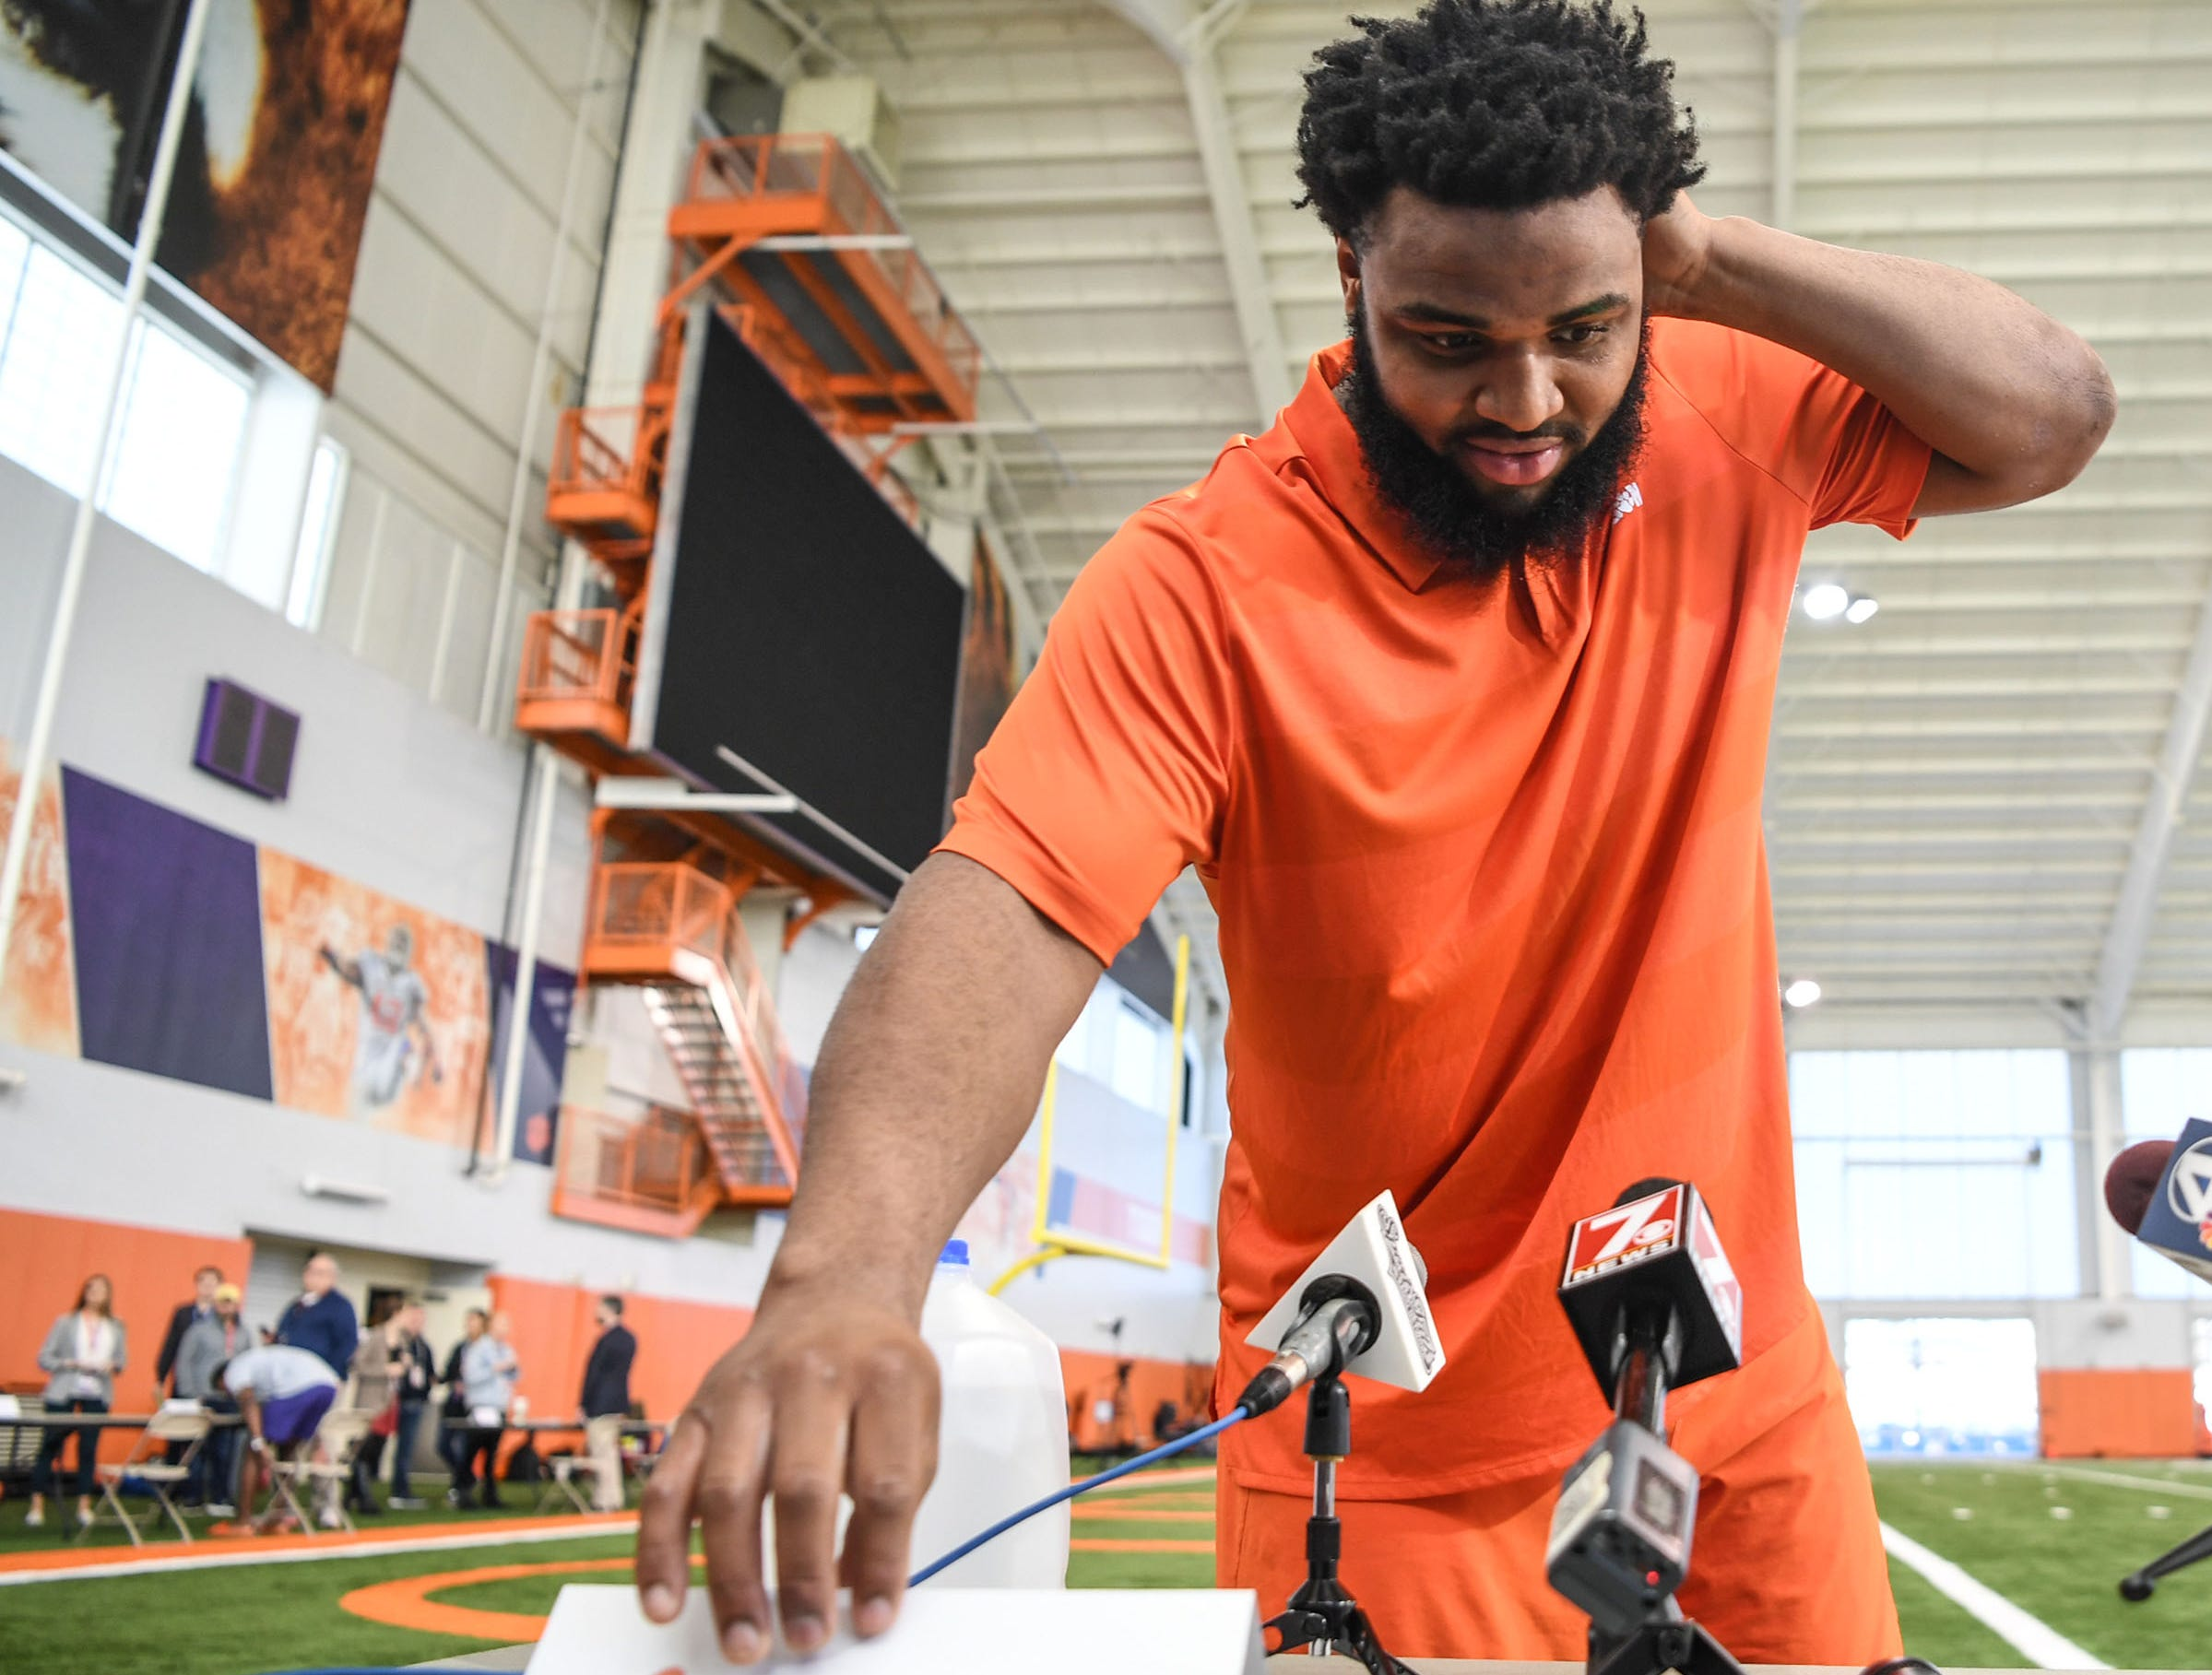 Clemson defensive lineman Christian Wilkins rearranges his name card with Dexter Lawrence before he is interviewed during Media Day at the Poe Indoor Facility in Clemson on Tuesday.